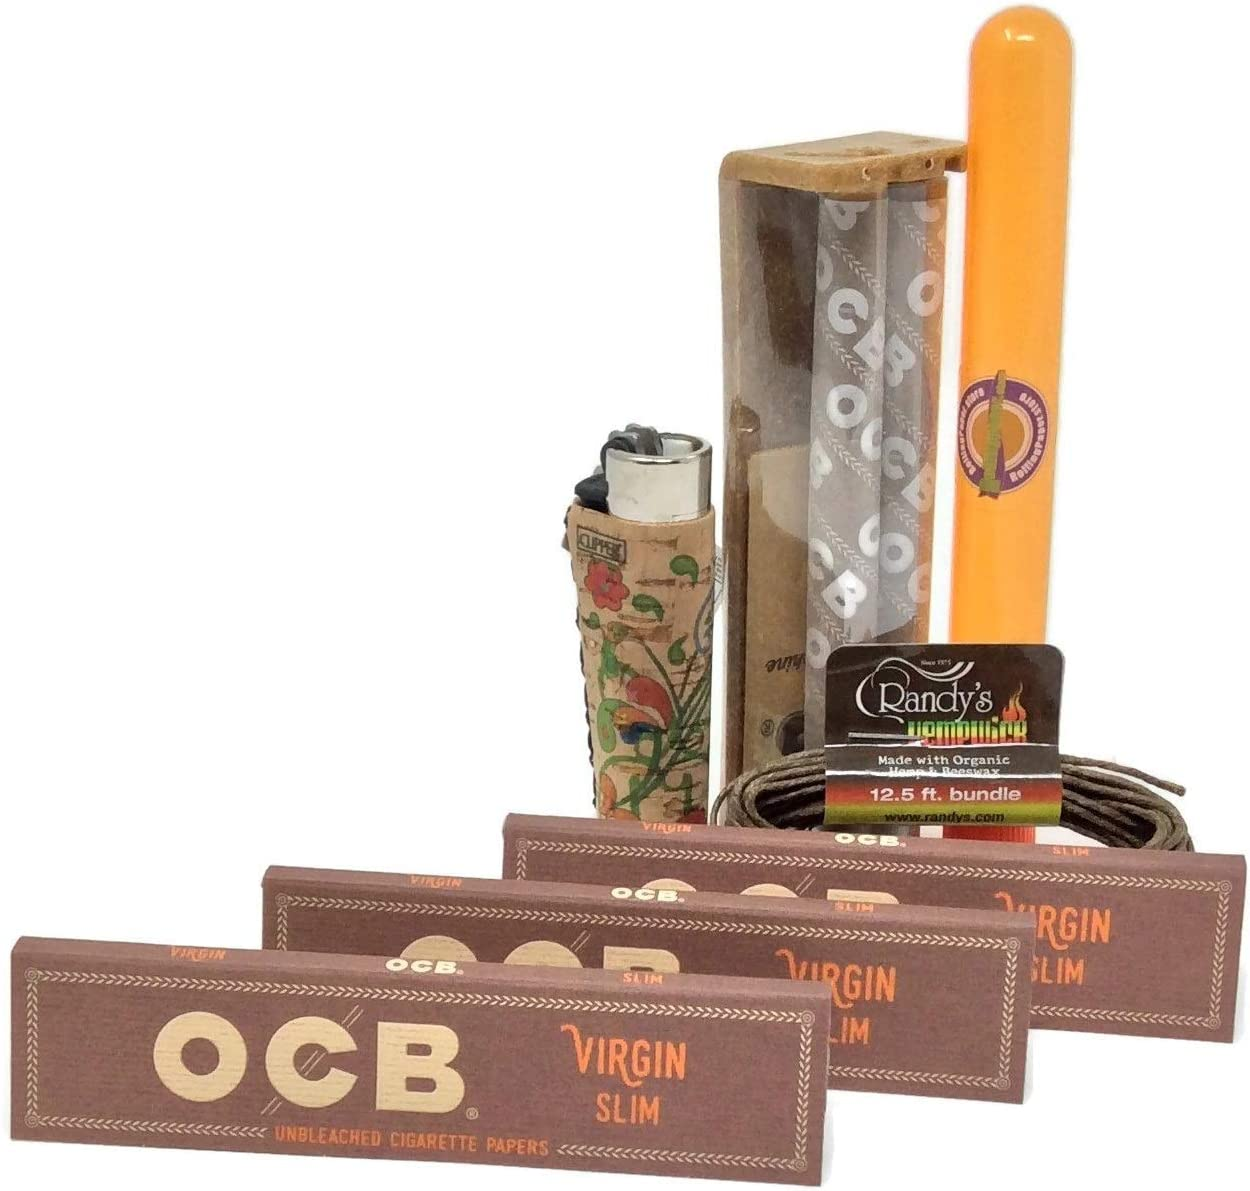 OCB Virgin King Size Slim 5 PACKS Unbleached Super Thin Rolling Papers